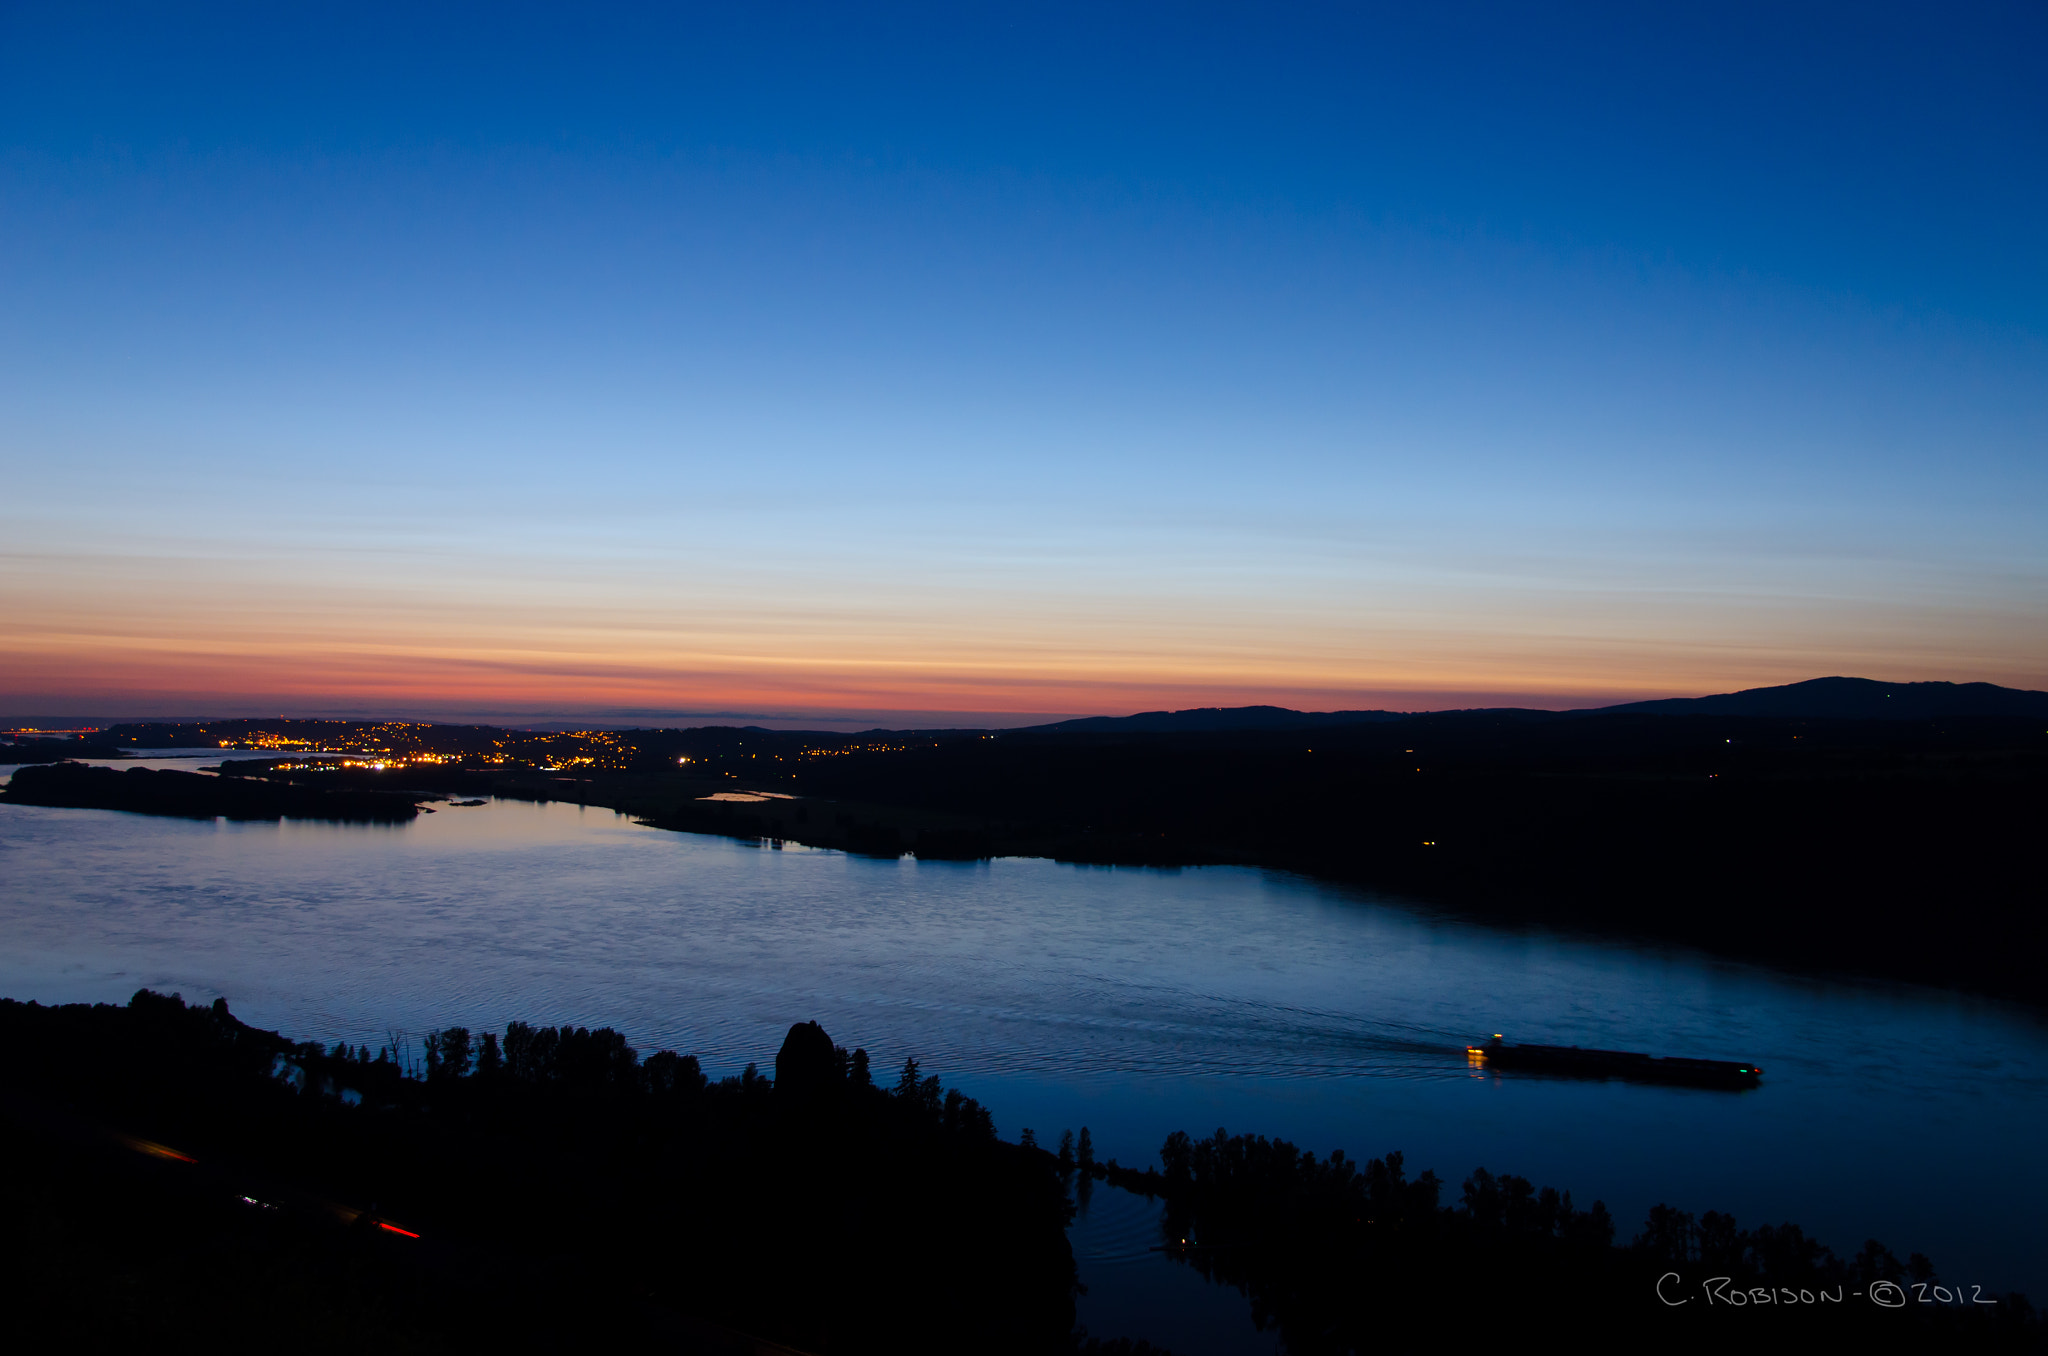 Photograph The Columbia at Dusk by Chris Robison on 500px